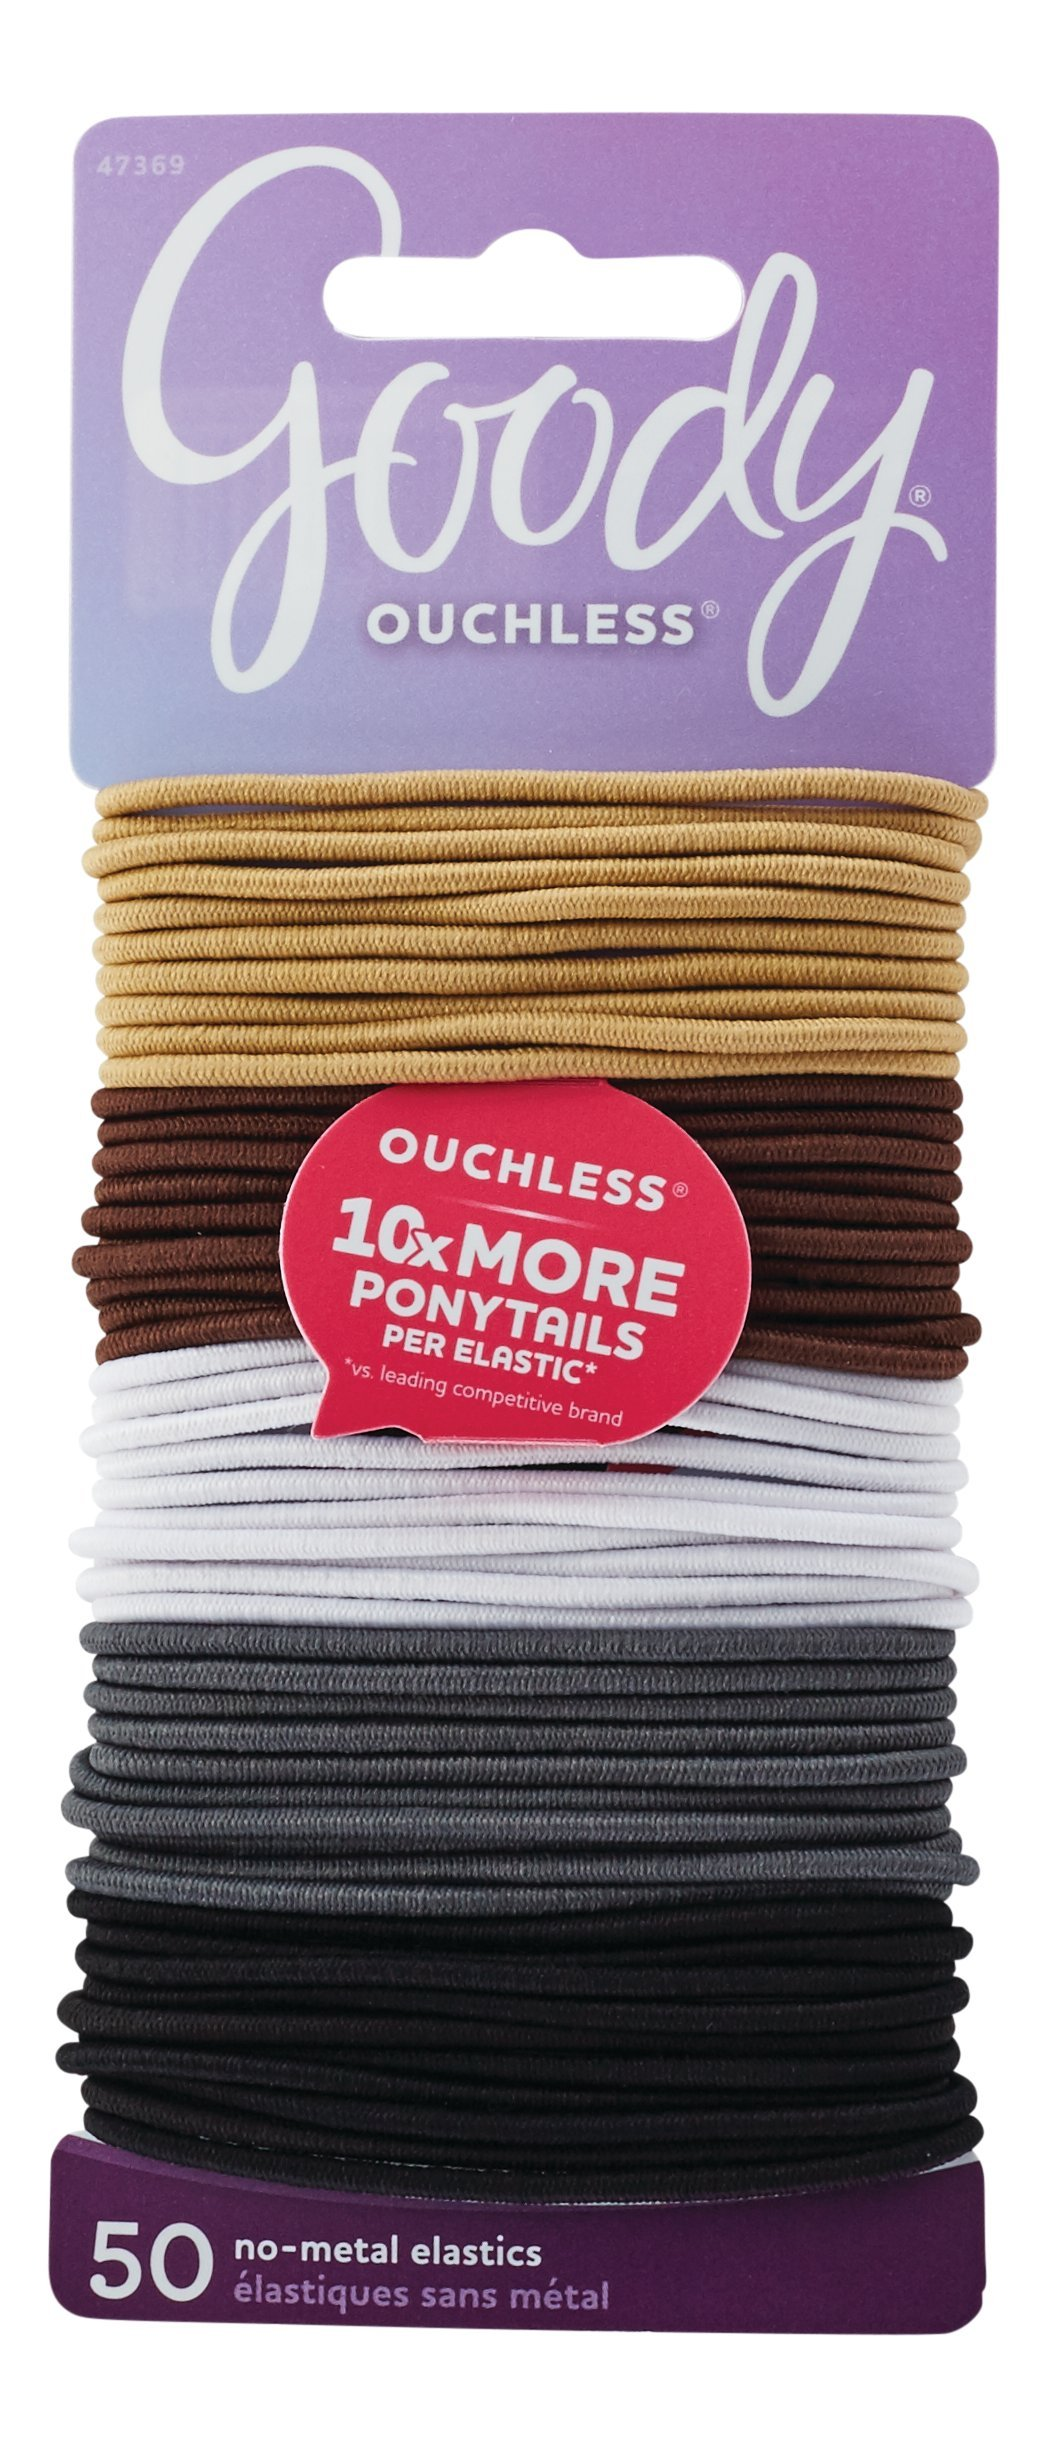 Goody Women's Ouchless 2 mm Elastics, Neutral, 50 Count